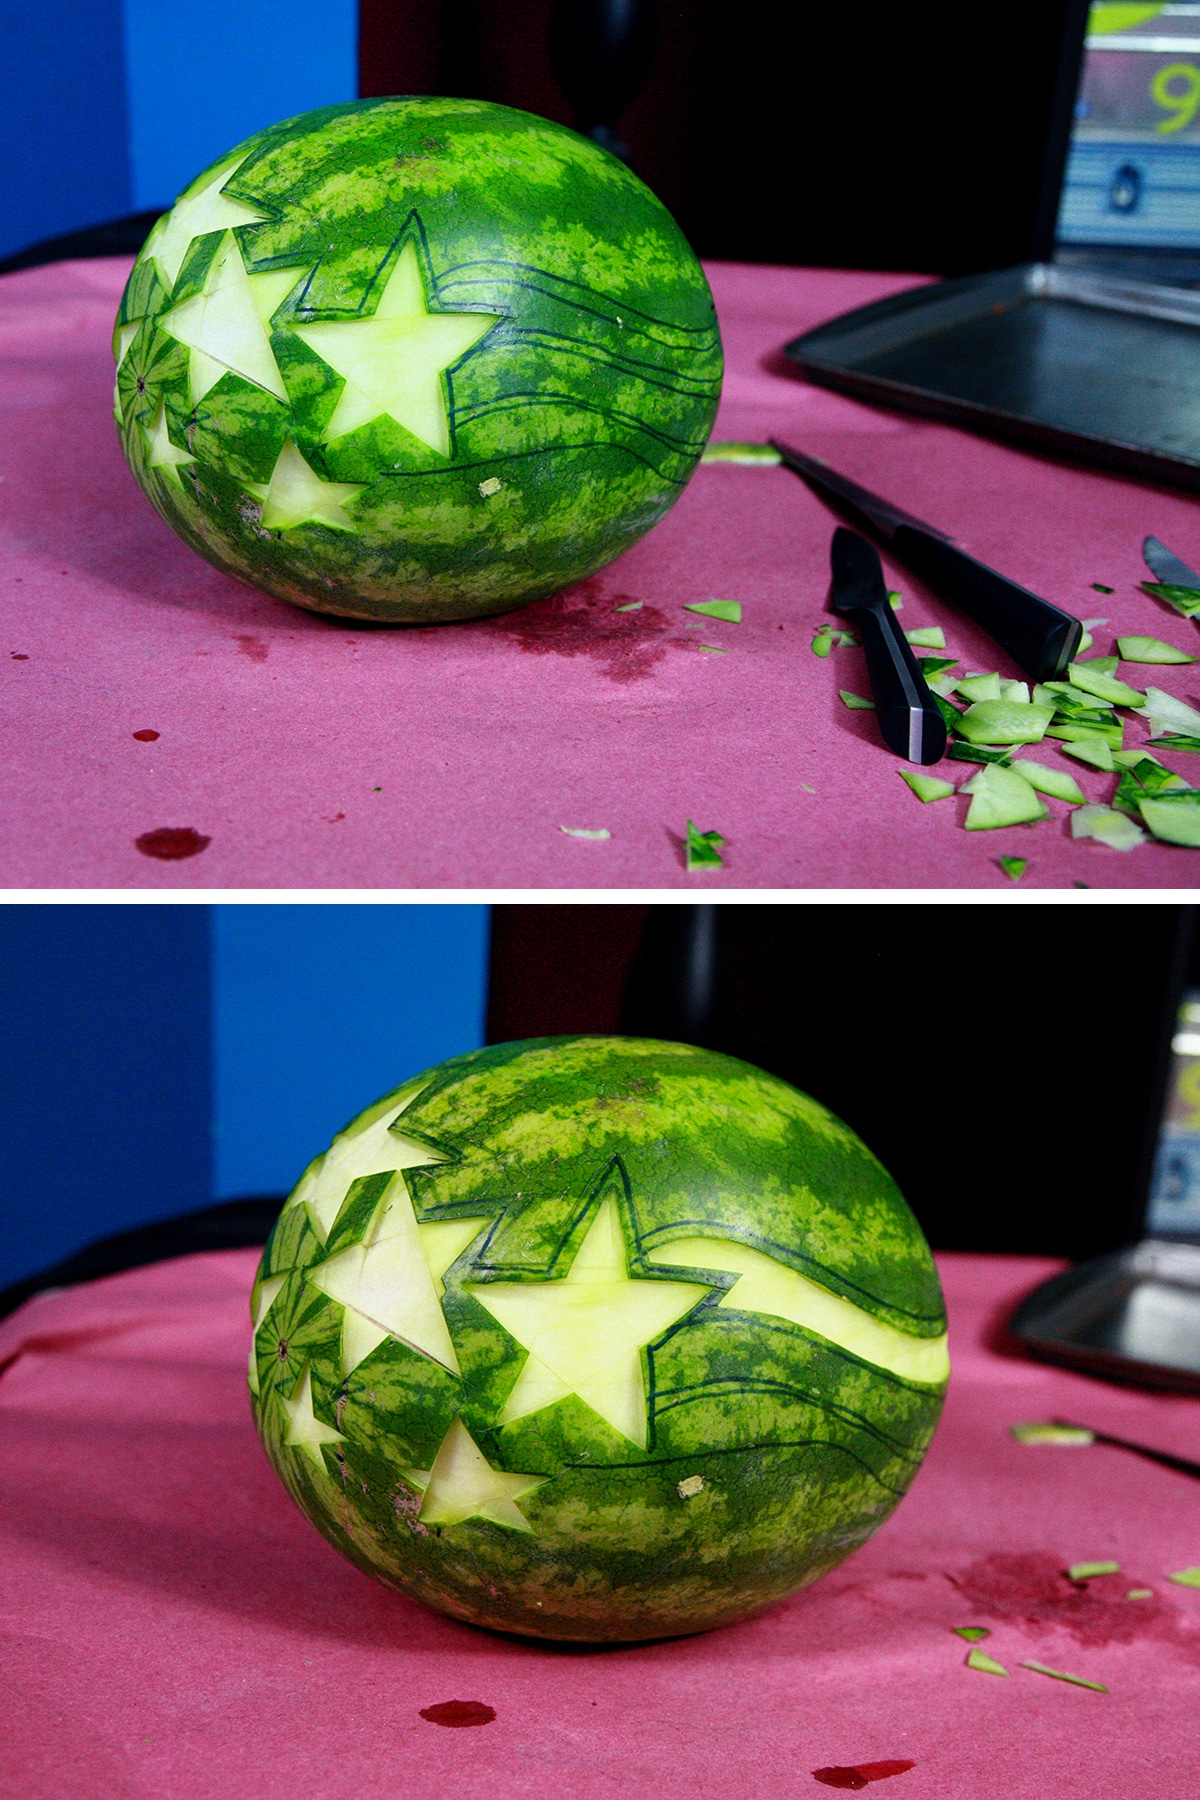 A two part image showing stars and stripes being carved out of the watermelon rind.